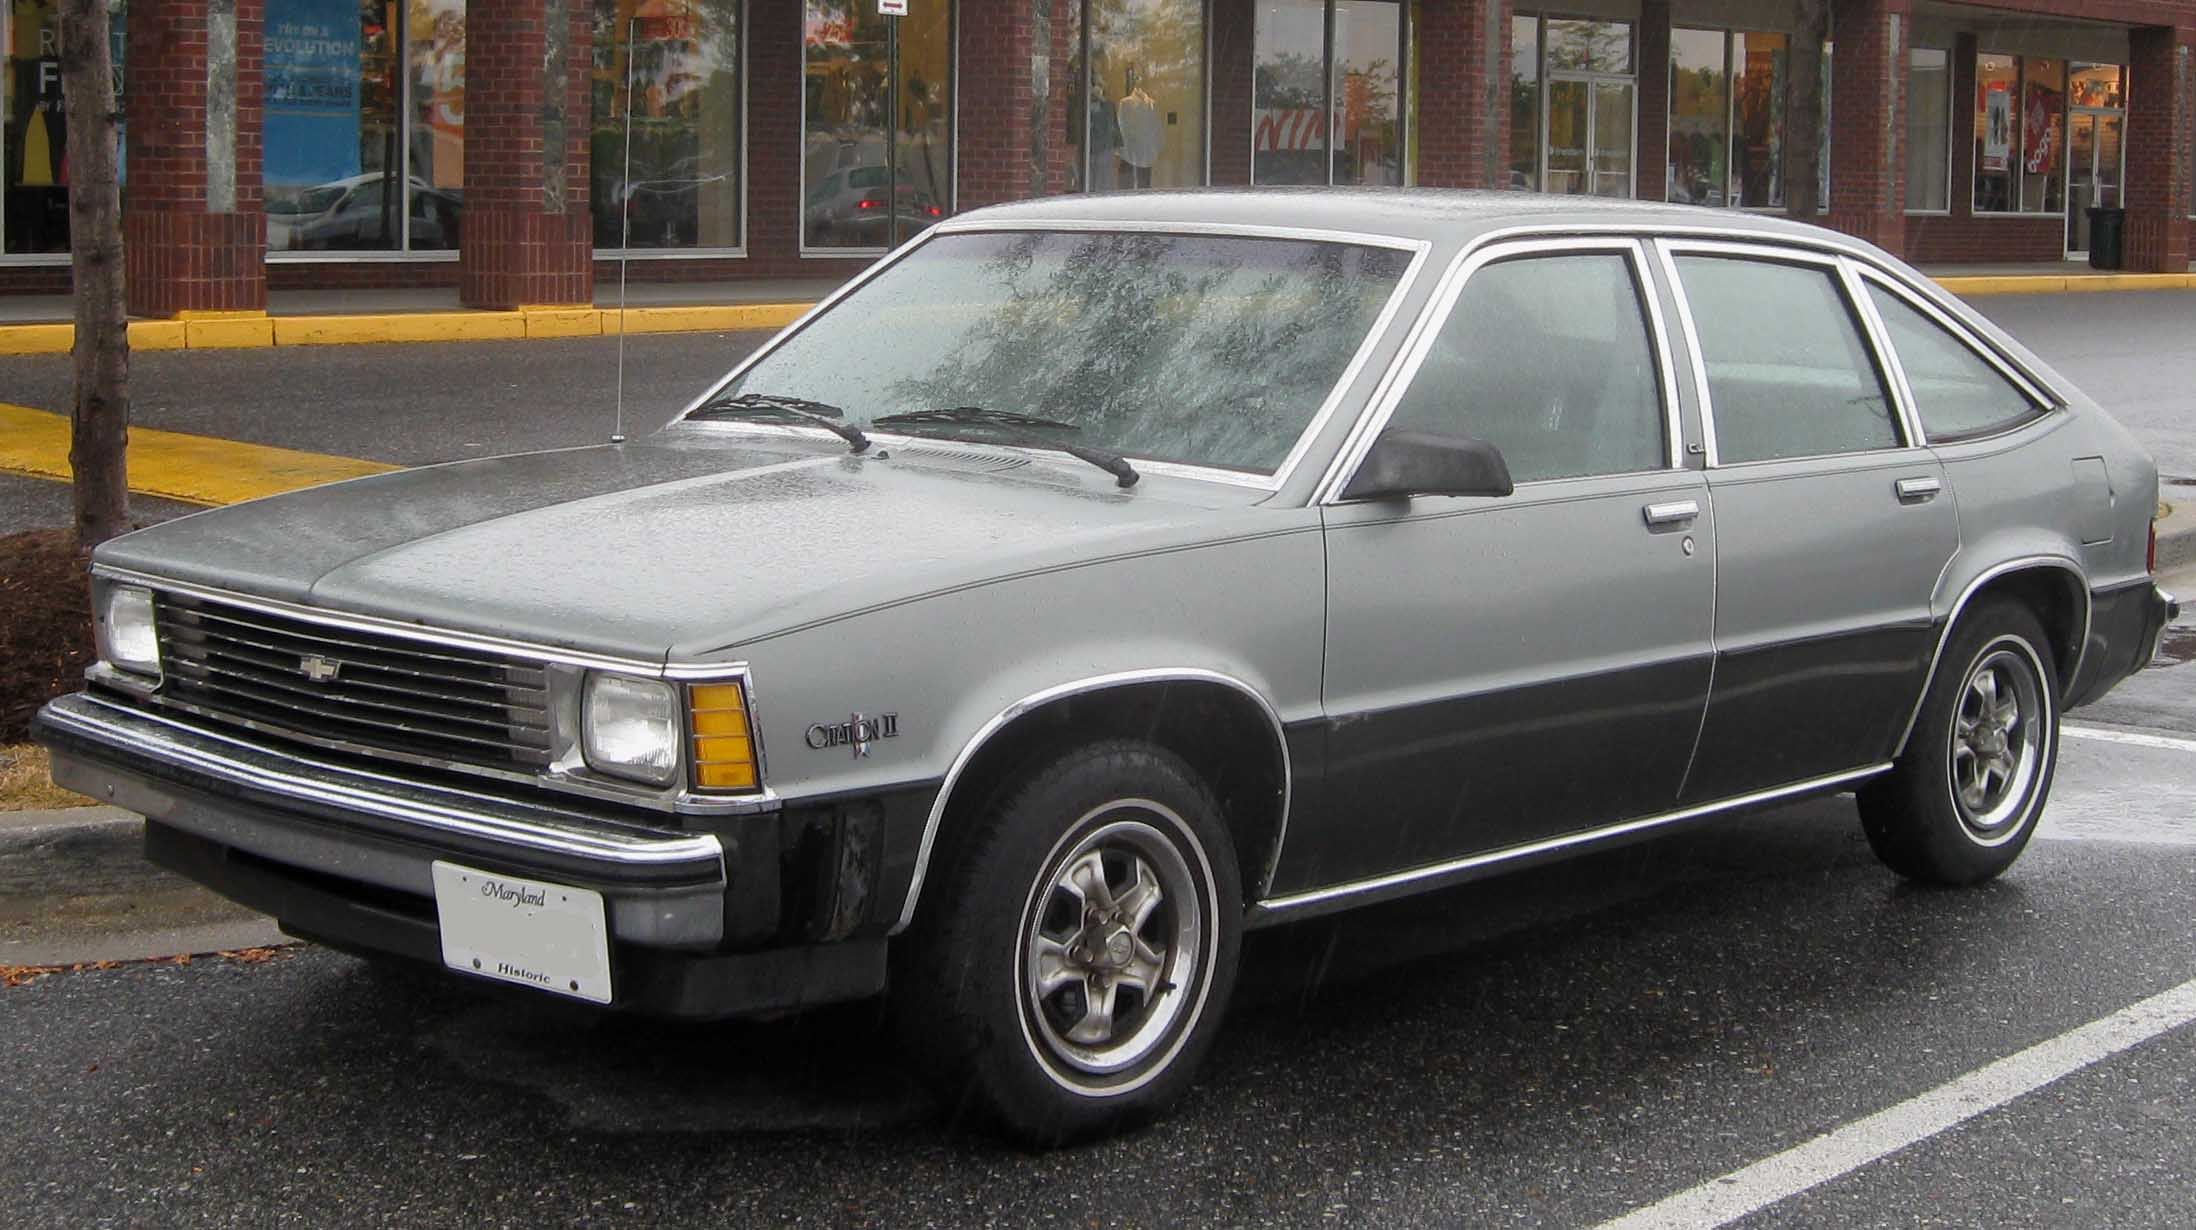 1982 Chevrolet Citation #1